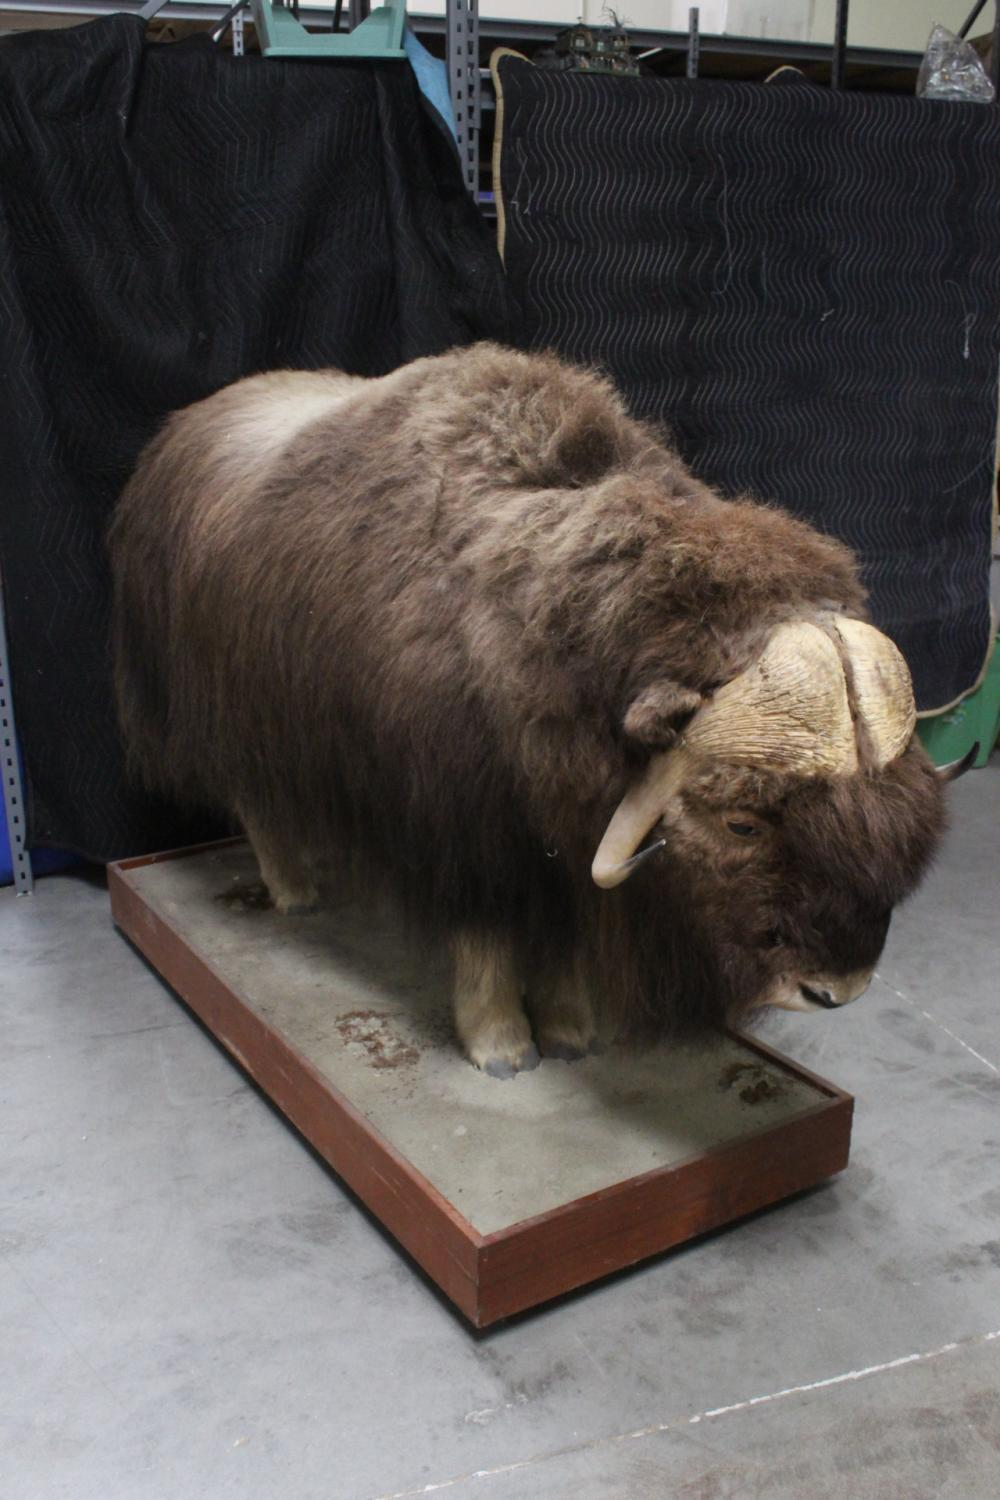 Lot 139: A rare full body taxidermy of musk ox